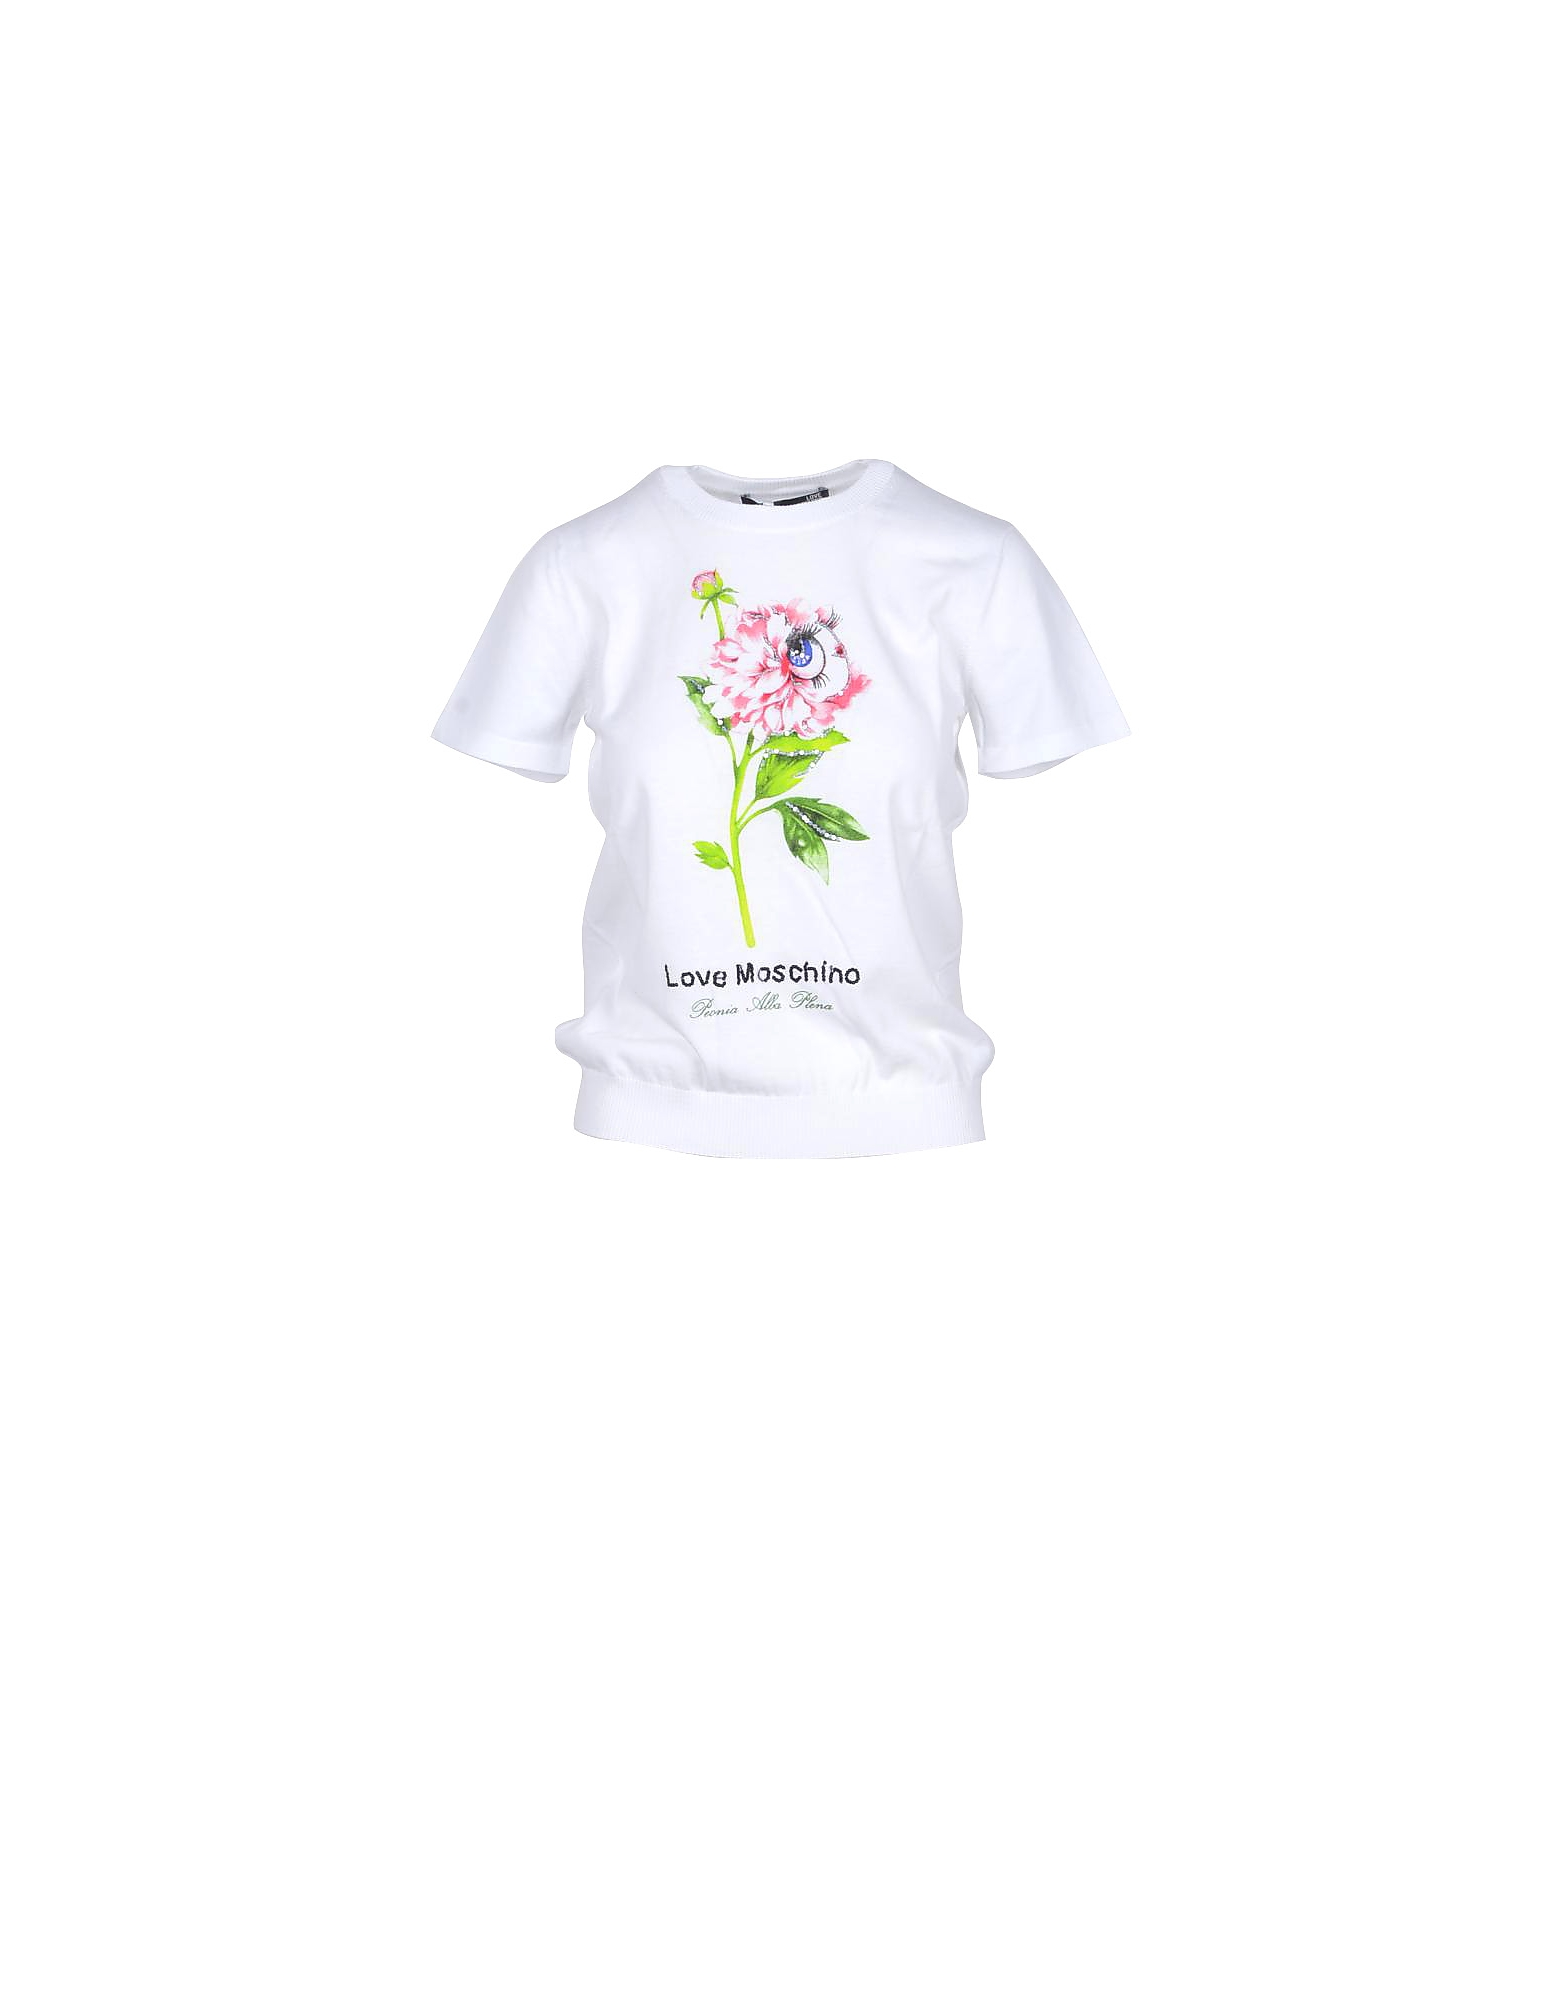 Love Moschino Designer T-Shirts & Tops, White Cotton Women's T-shirt